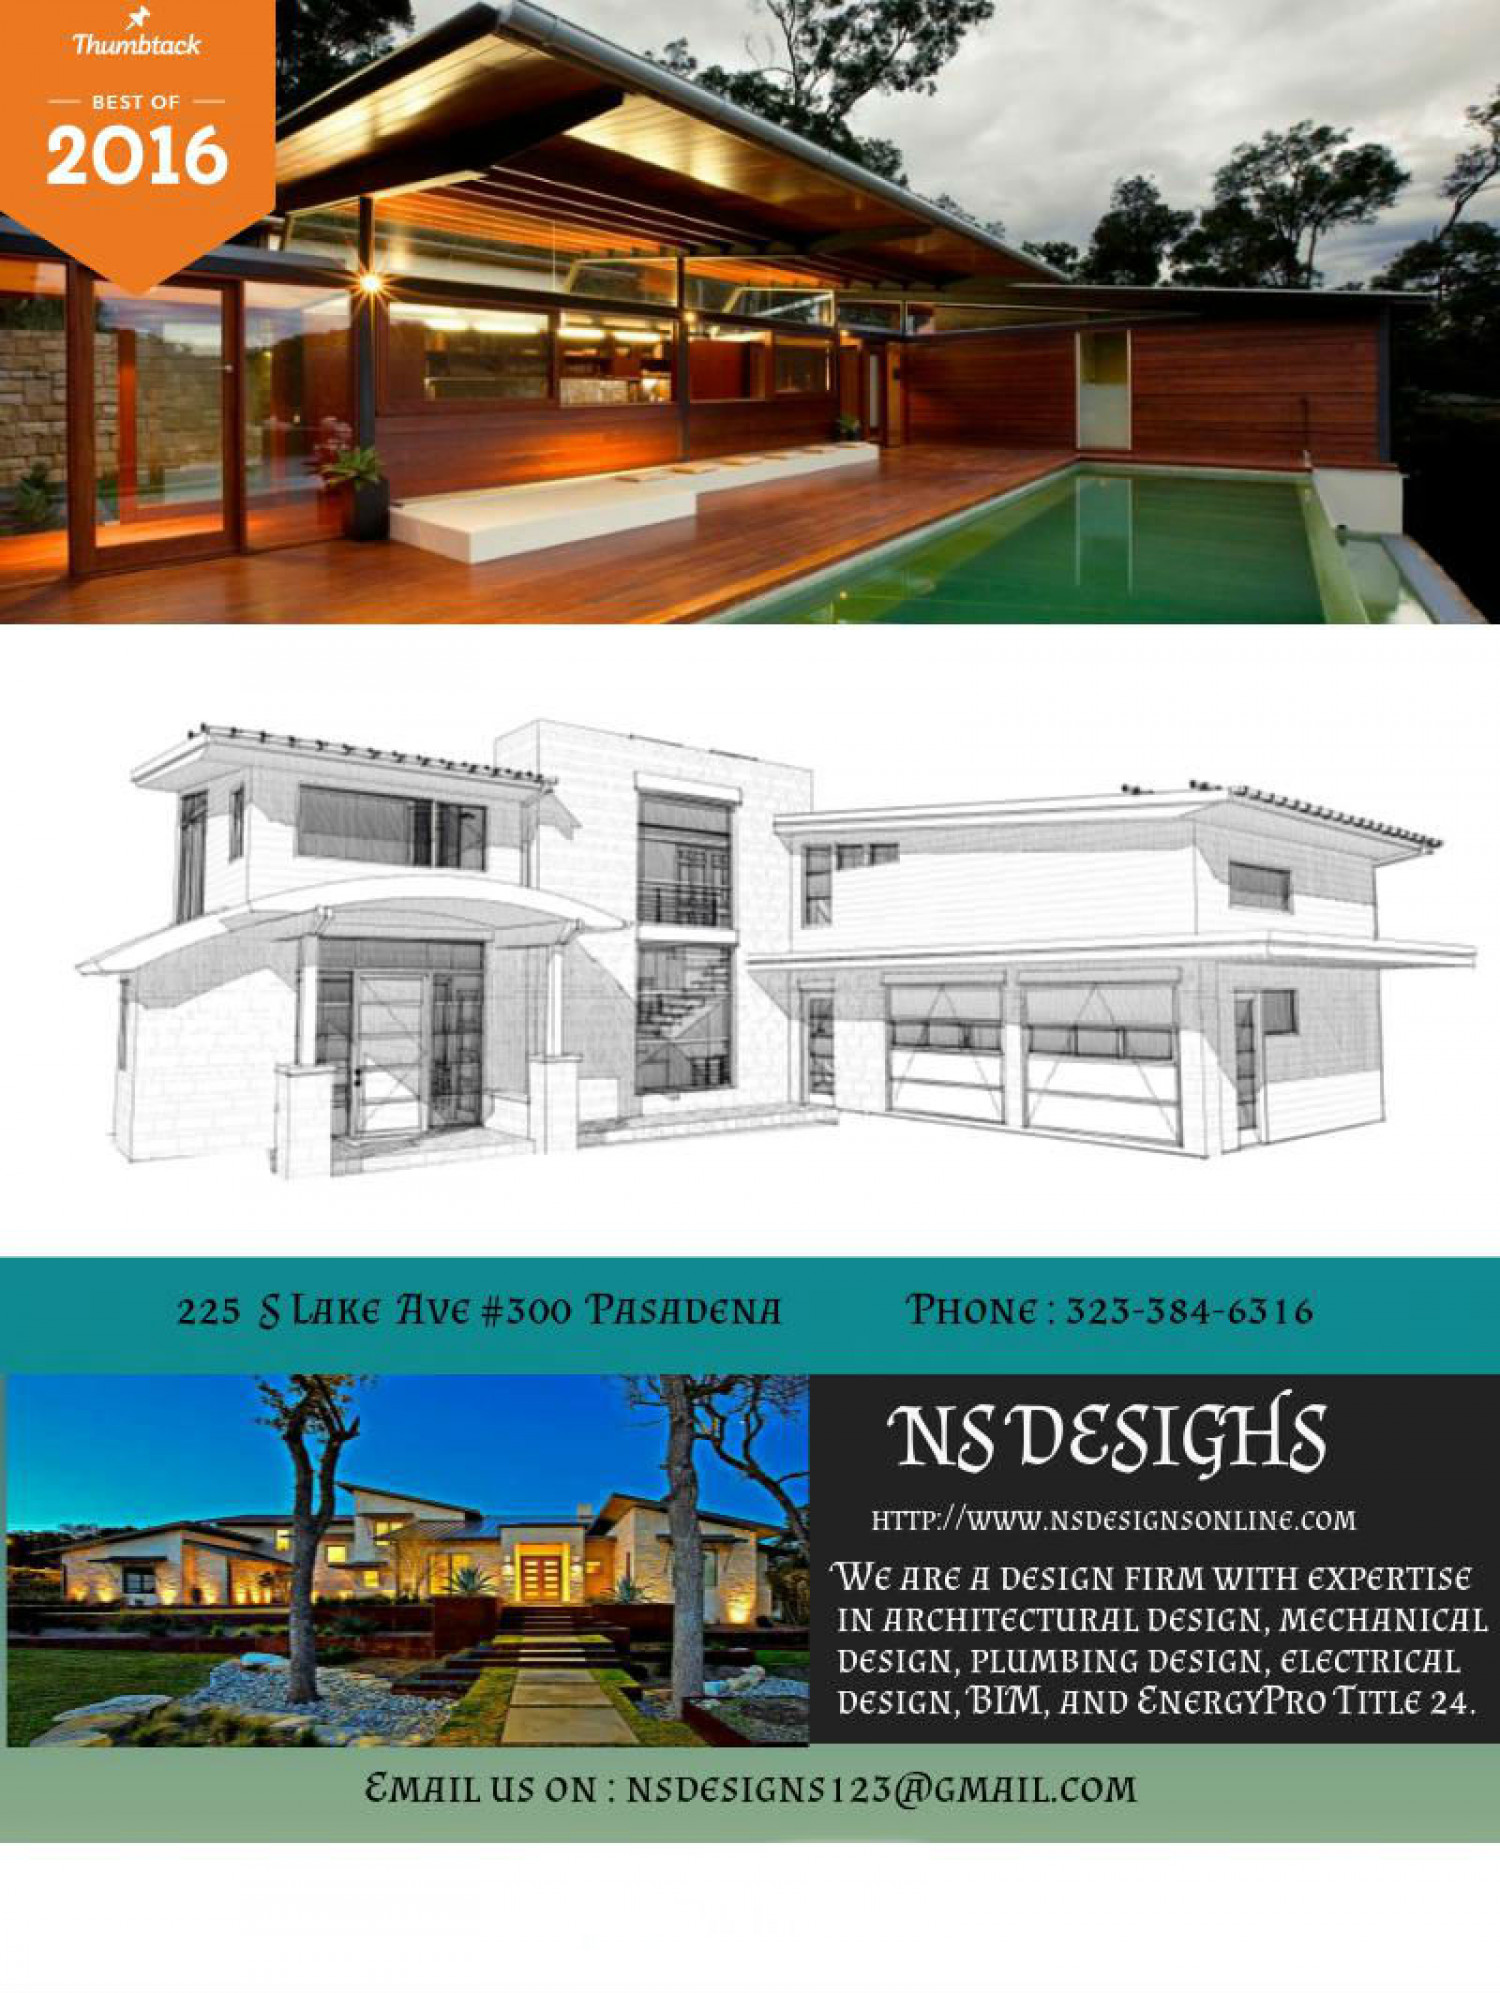 Interior Design Firms Los Angeles Infographic